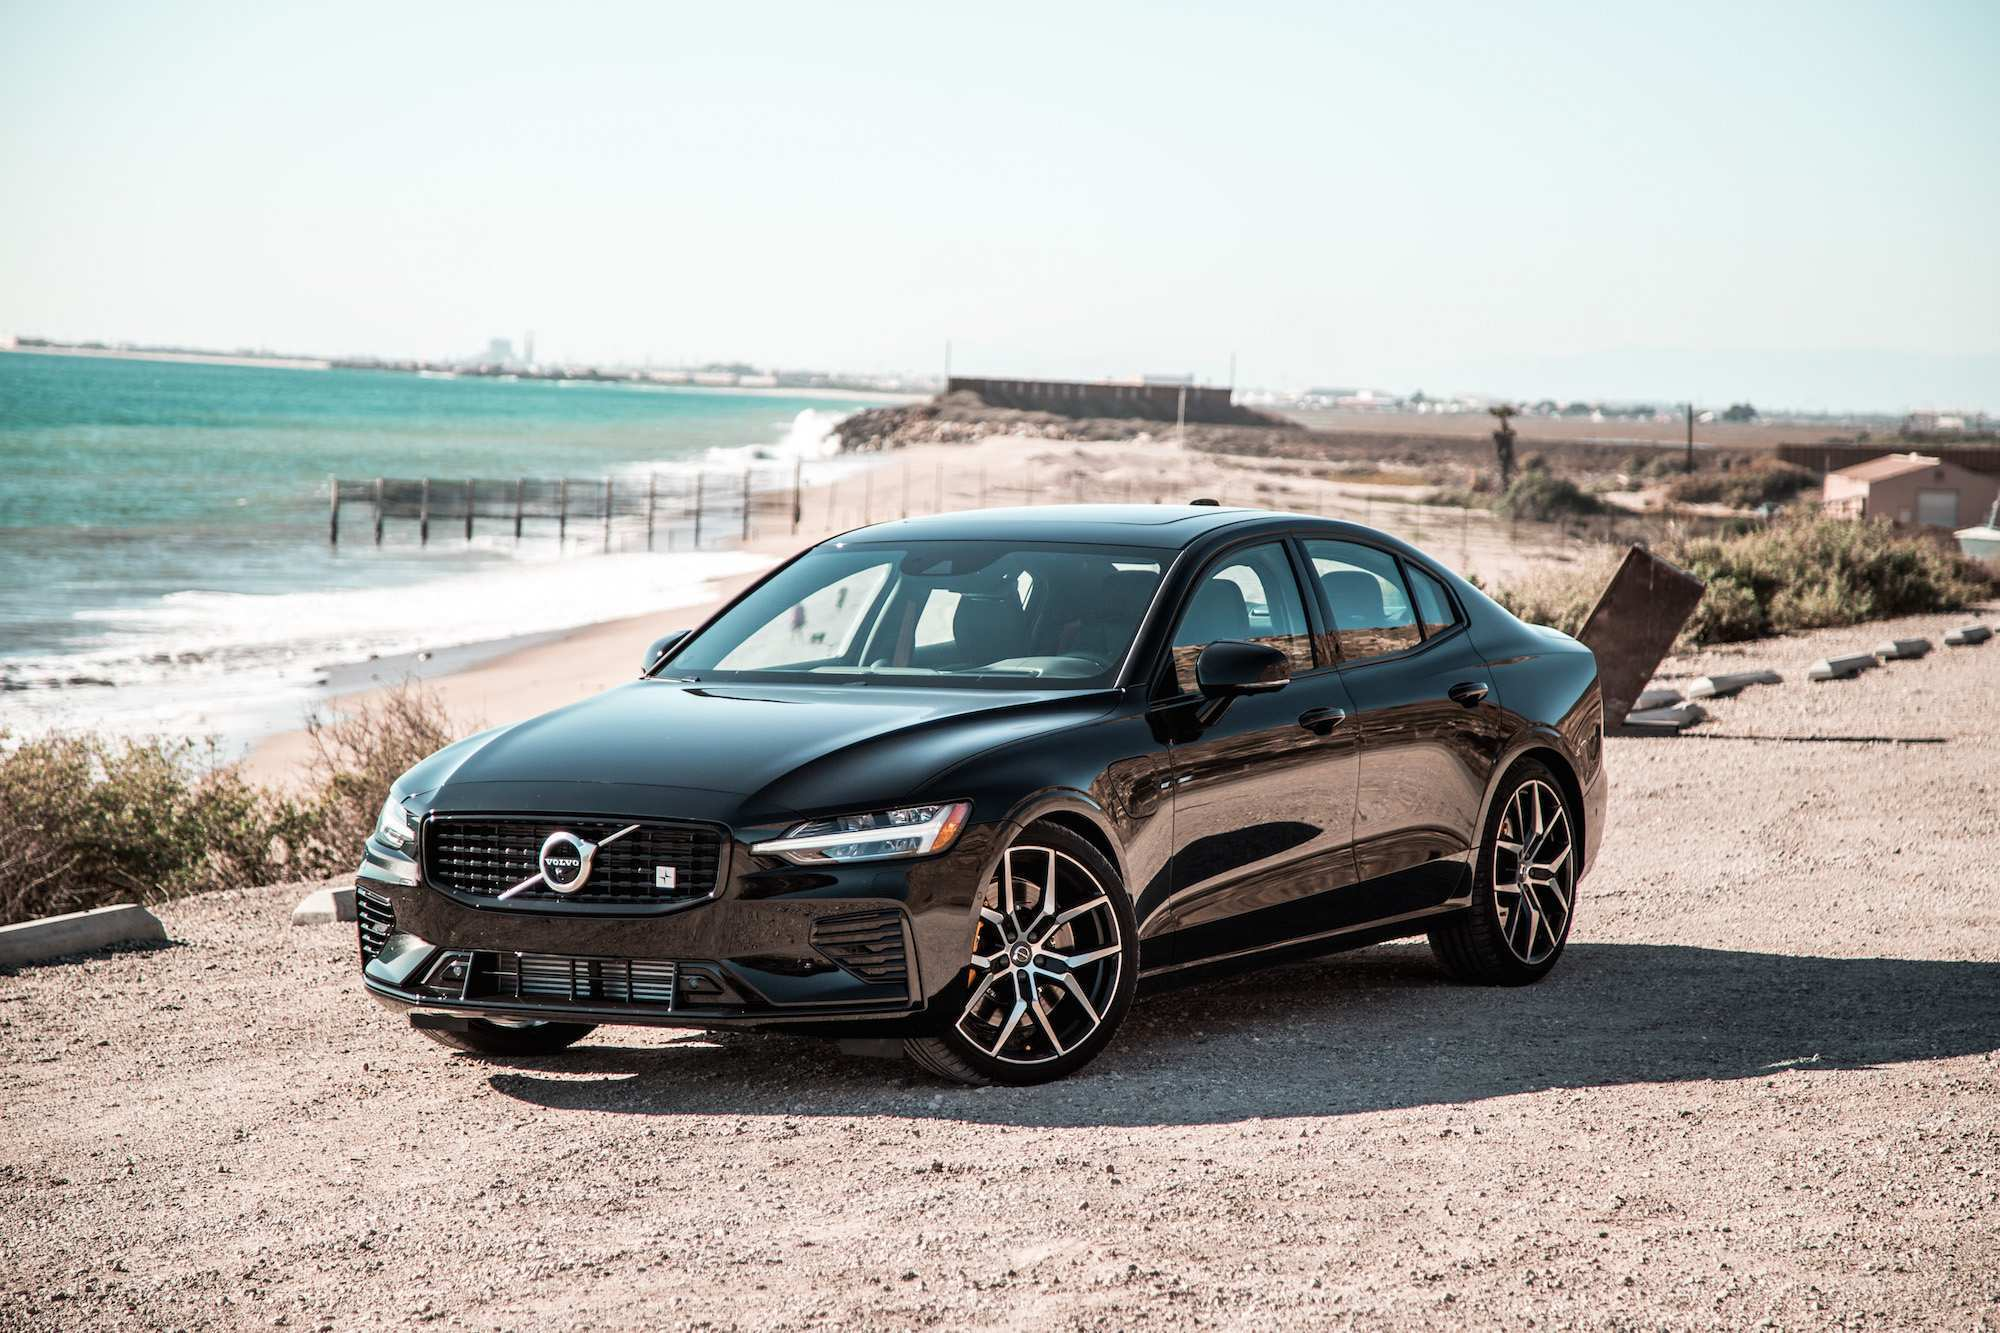 14 Concept of 2020 Volvo S60 Length Review for 2020 Volvo S60 Length